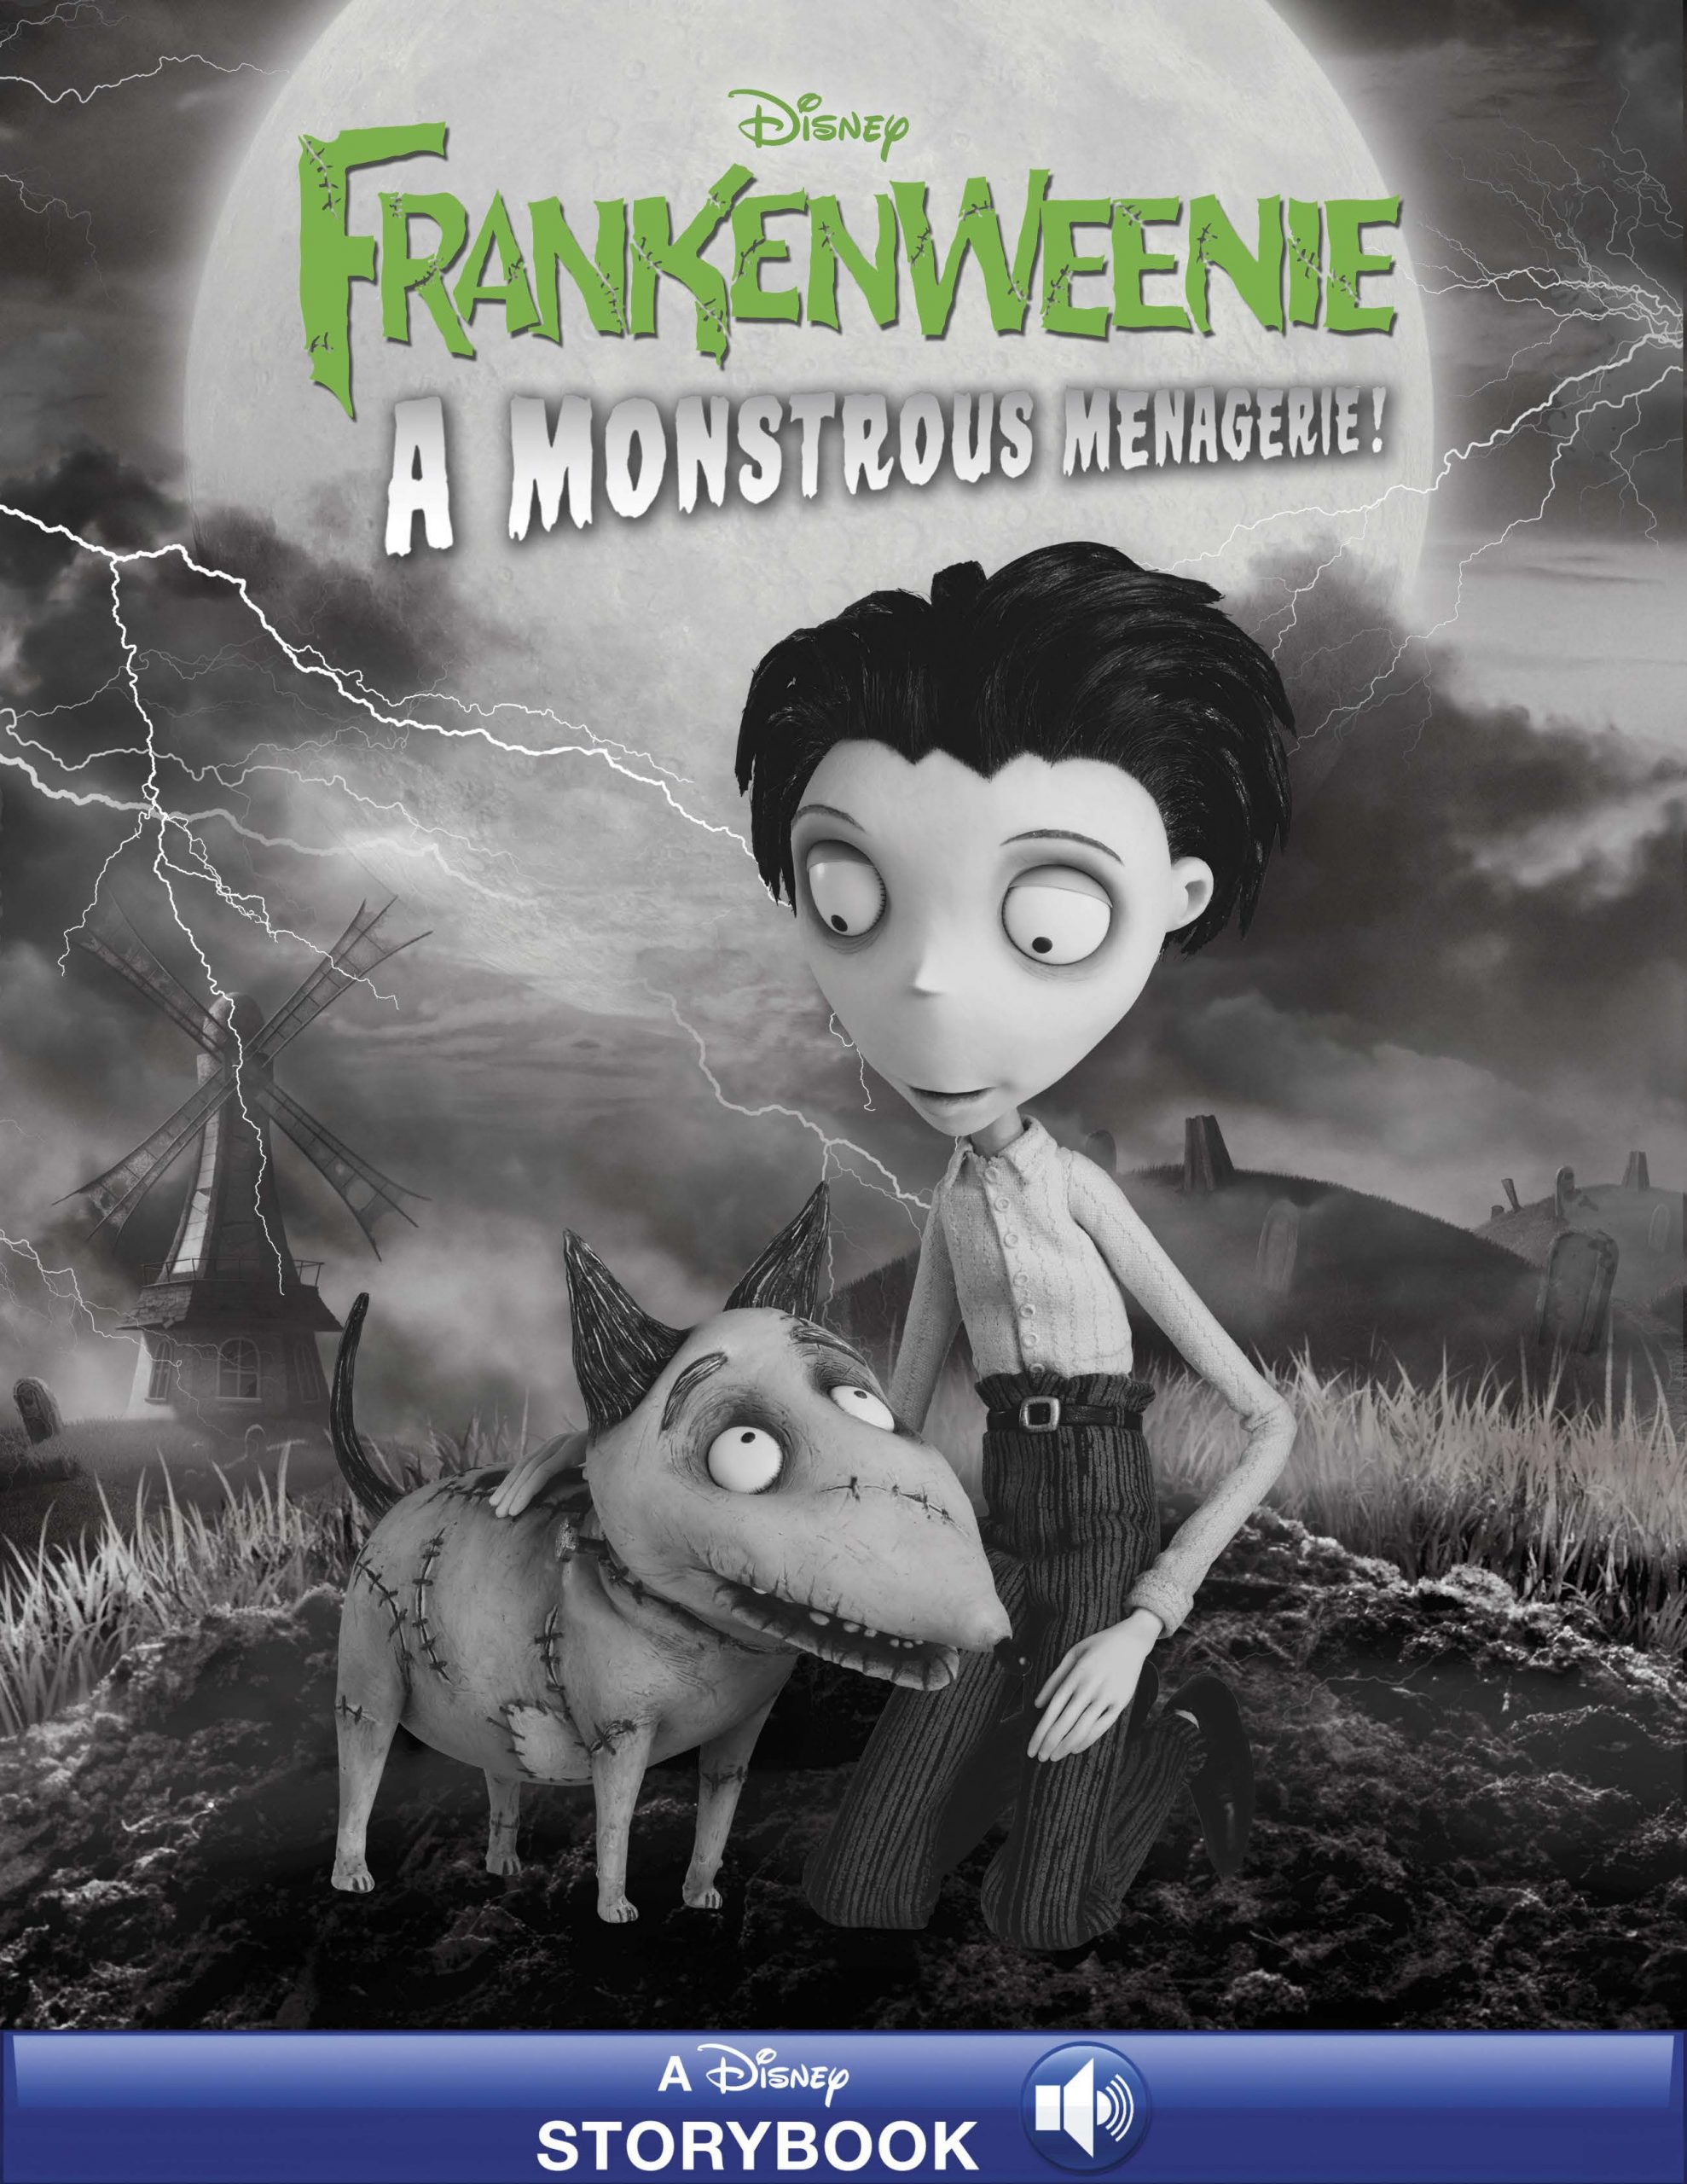 Frankenweenie A Monstrous Menagerie Disney Books Disney Publishing Worldwide